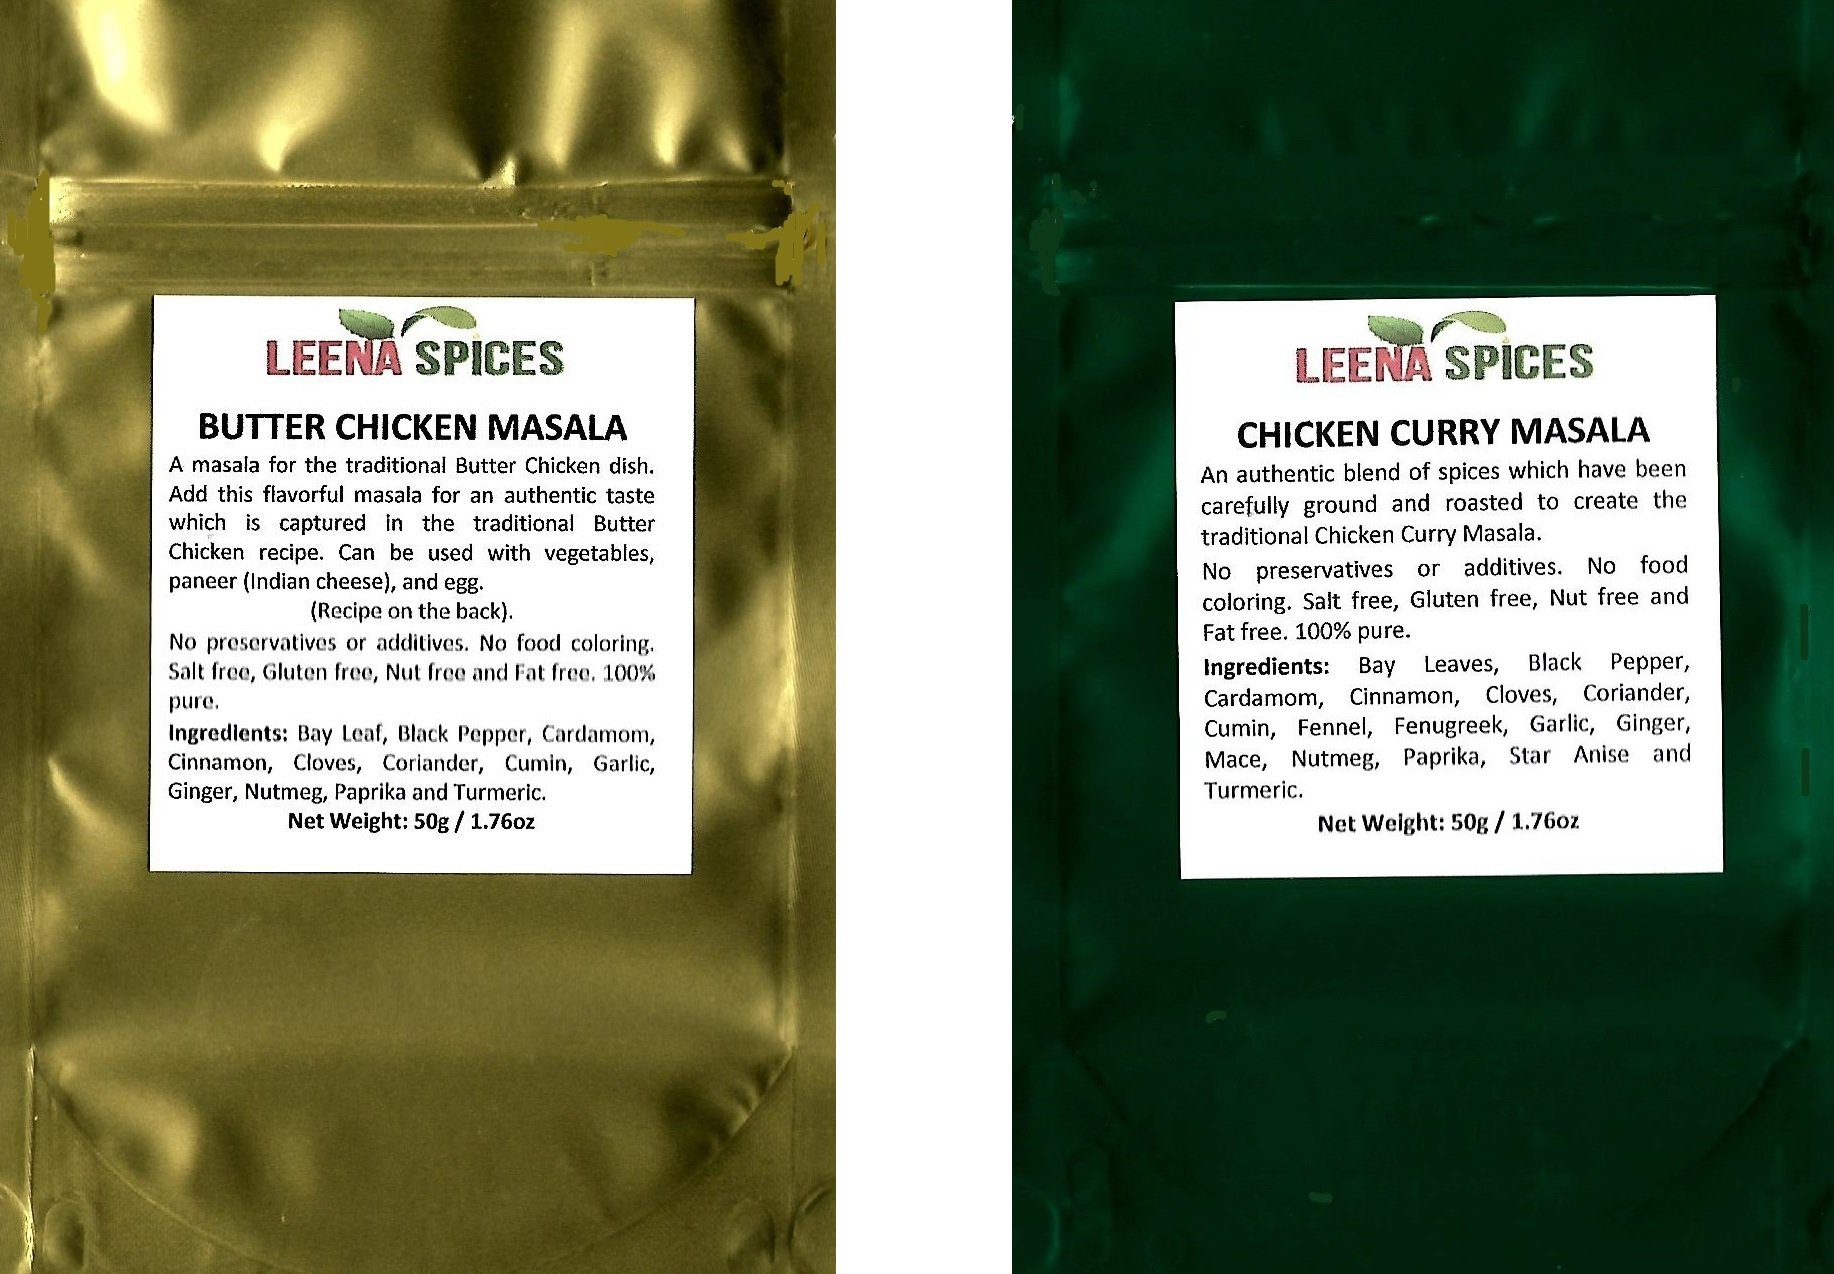 LEENA SPICES – Butter Chicken Seasoning And Chicken Curry Powder – Gluten Free Masala Spice – No Color Mix – With Recipe – Enjoy Quality Indian Food.